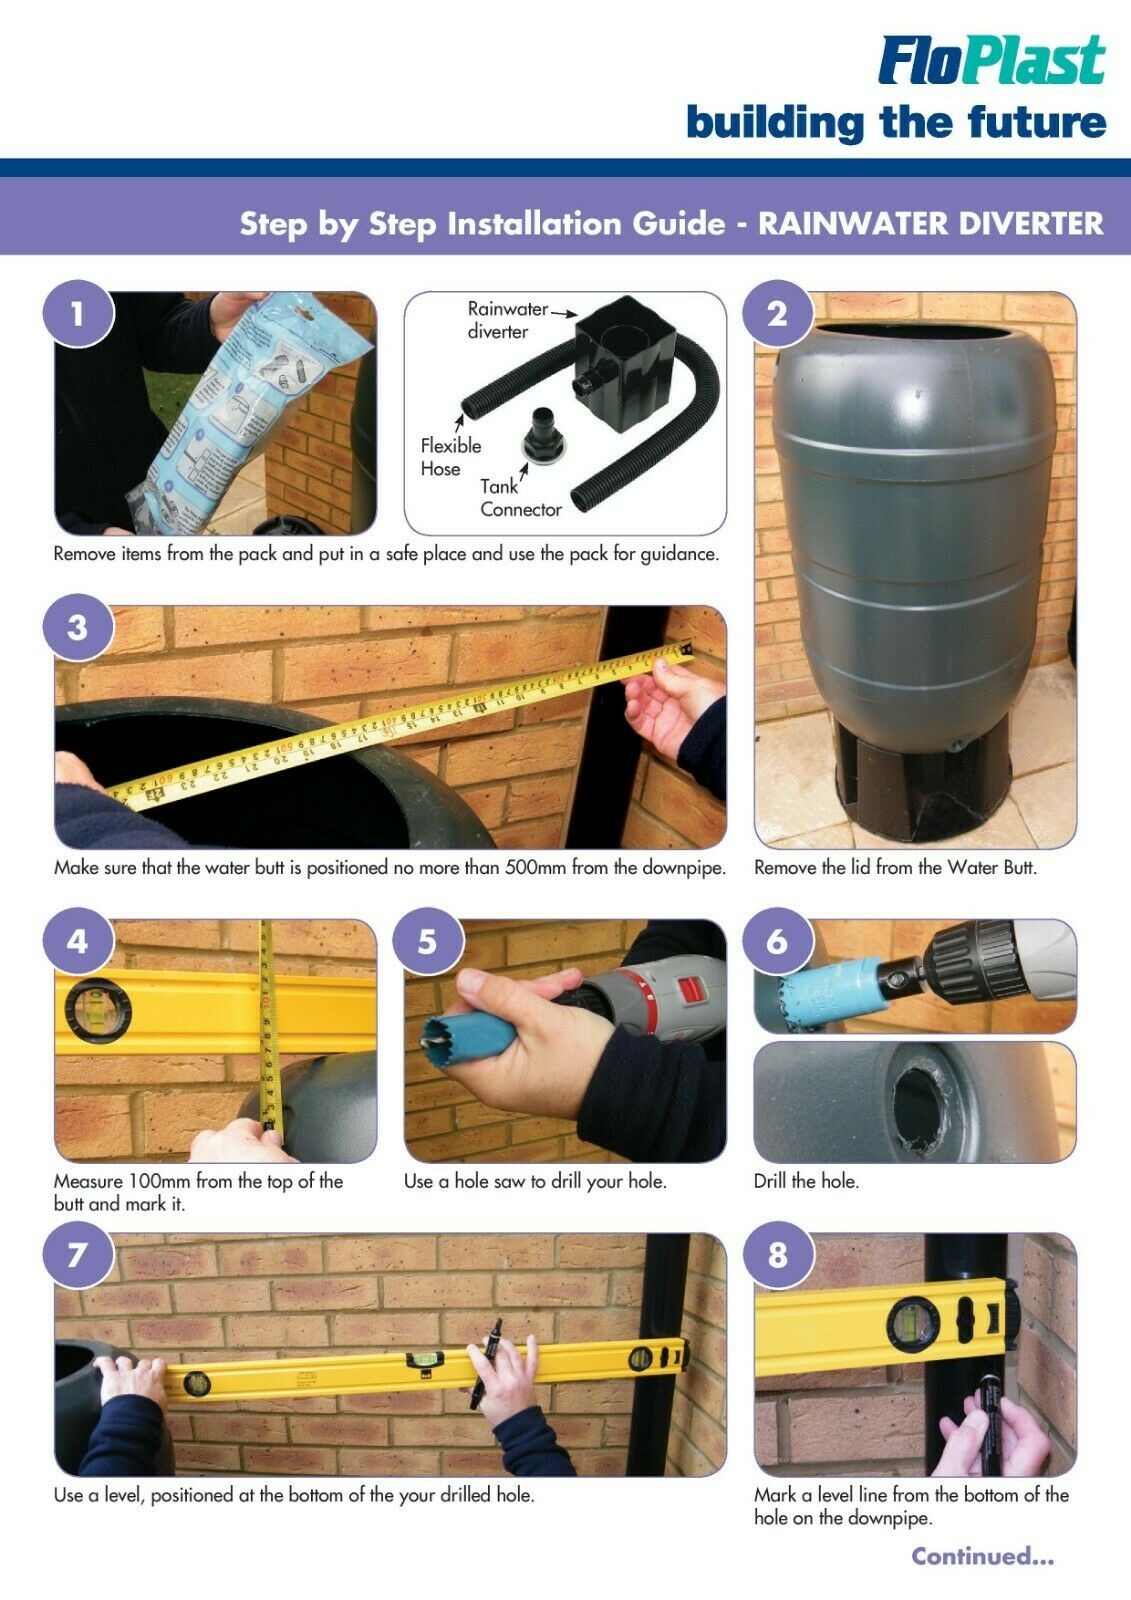 FloPlast Rainwater Diverter Kit Anthracite Grey Fits Square & Round Down Pipes